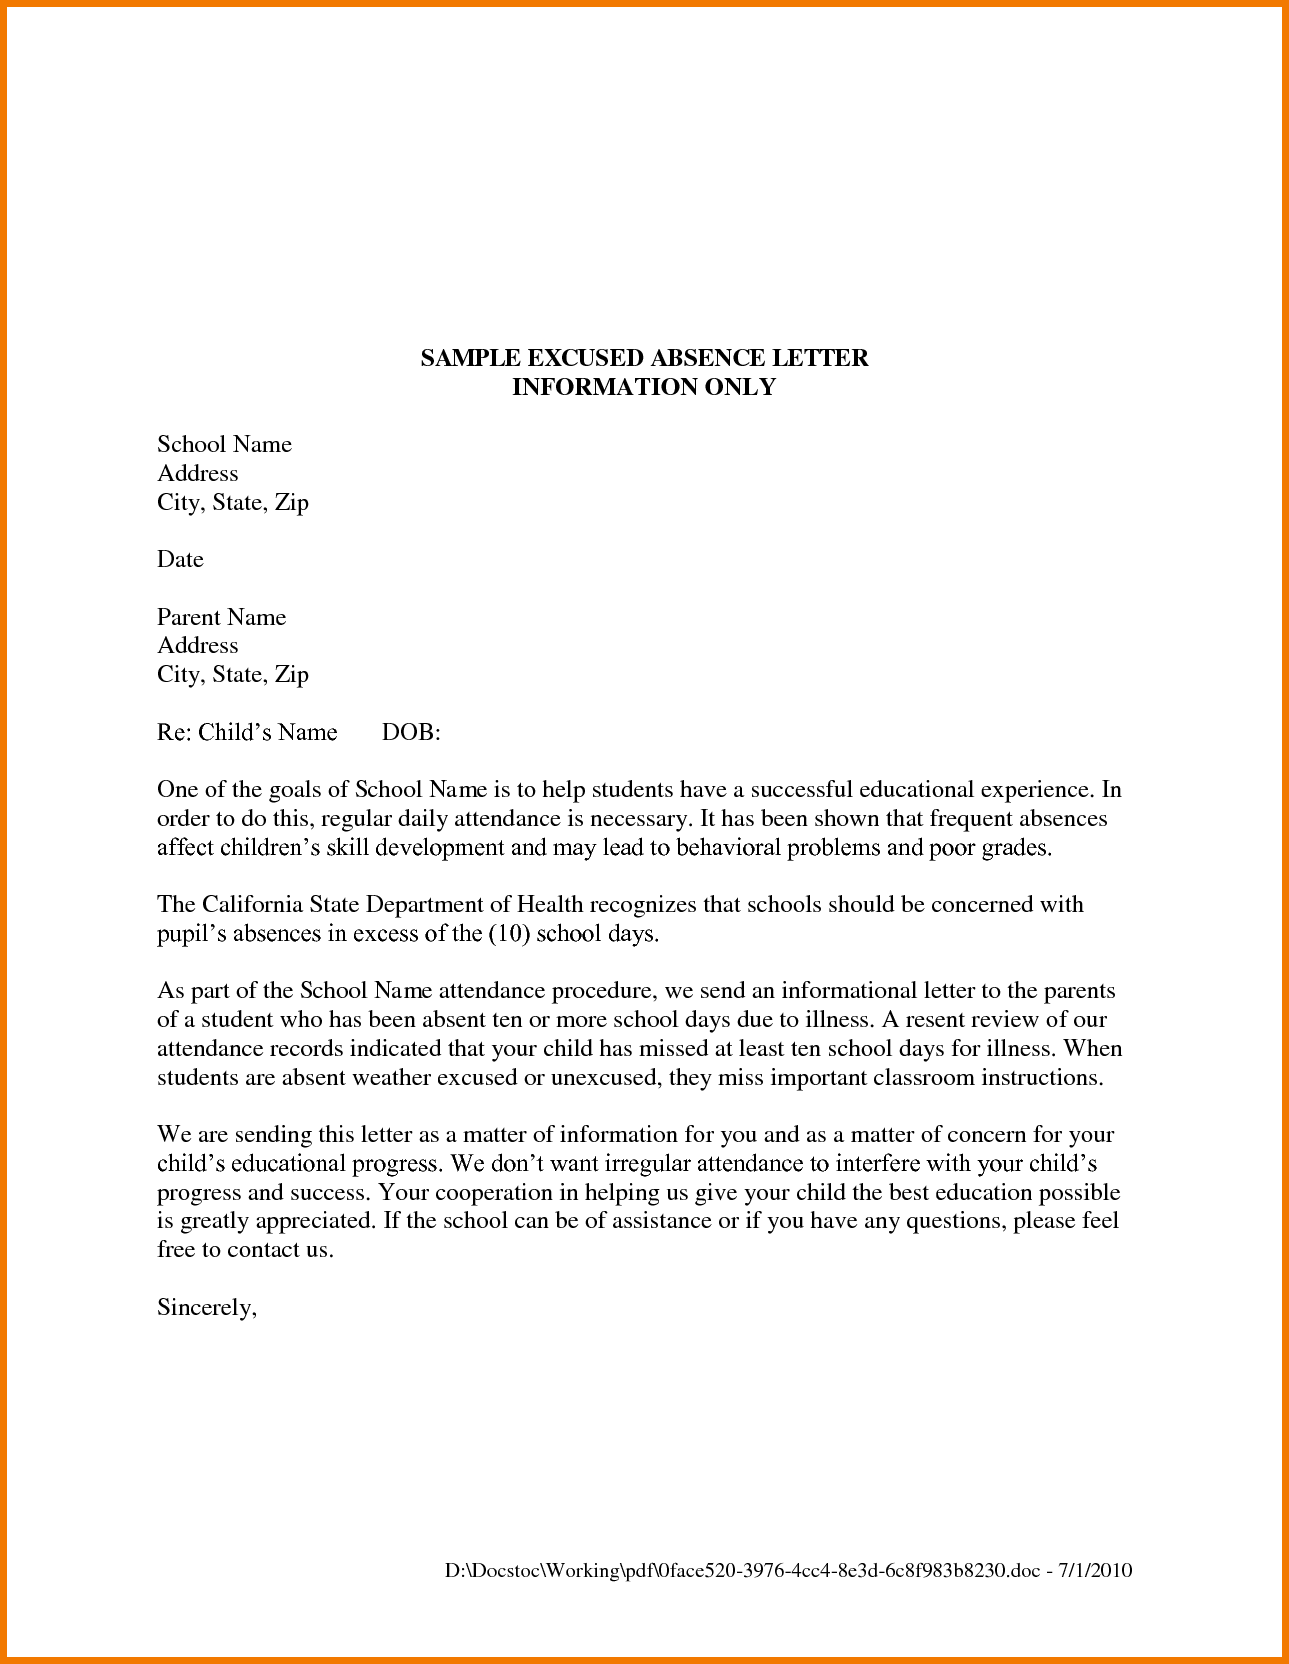 Application sample for leave absence college letter format home application sample for leave absence college letter format altavistaventures Image collections